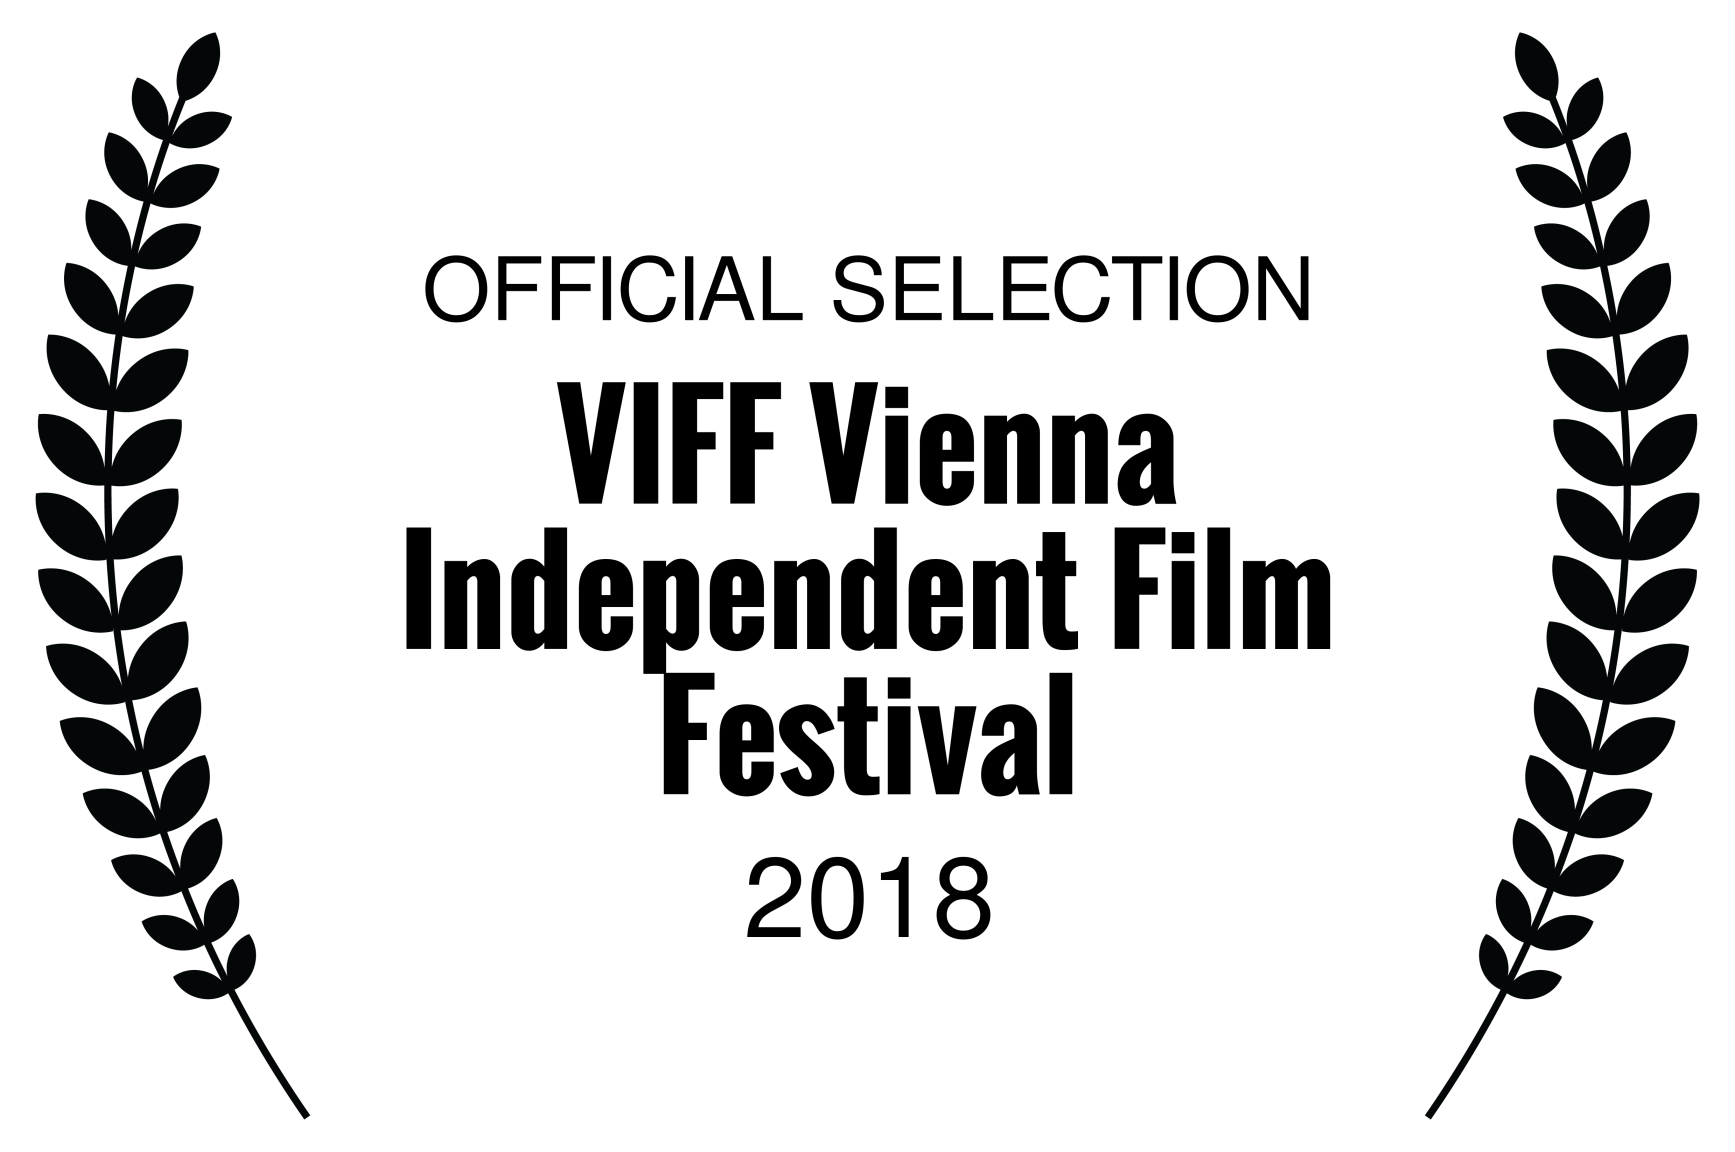 OFFICIAL SELECTION - VIFF Vienna Independent Film Festival - 2018.png